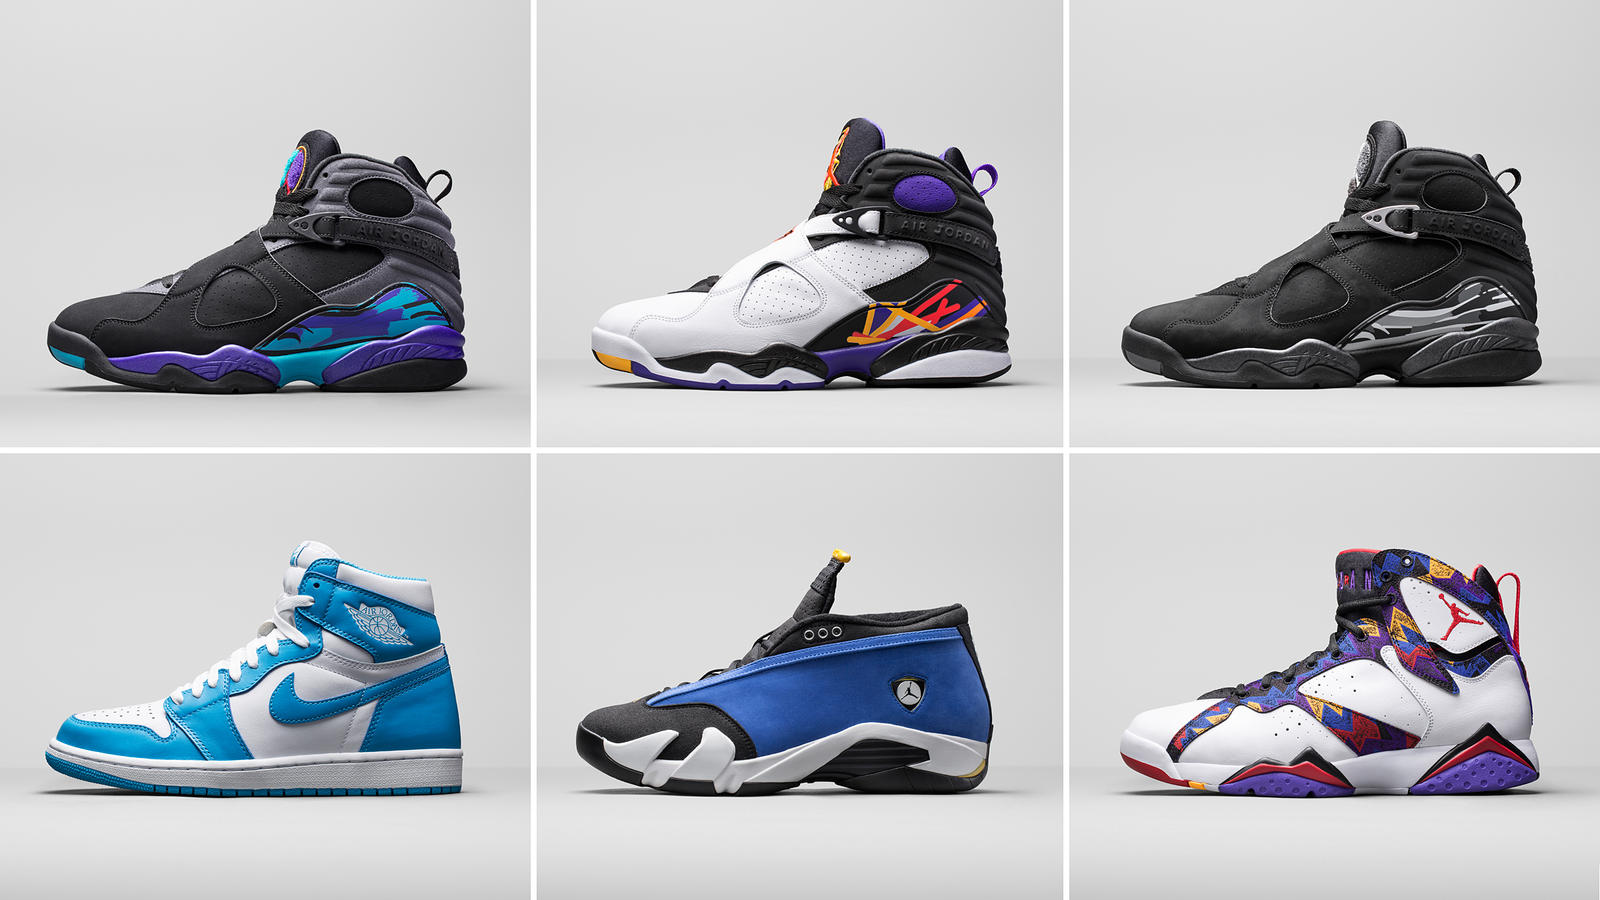 f6c47d208ca Jordan Brand Previews the Holiday 2015 Retro Lineup - Nike News